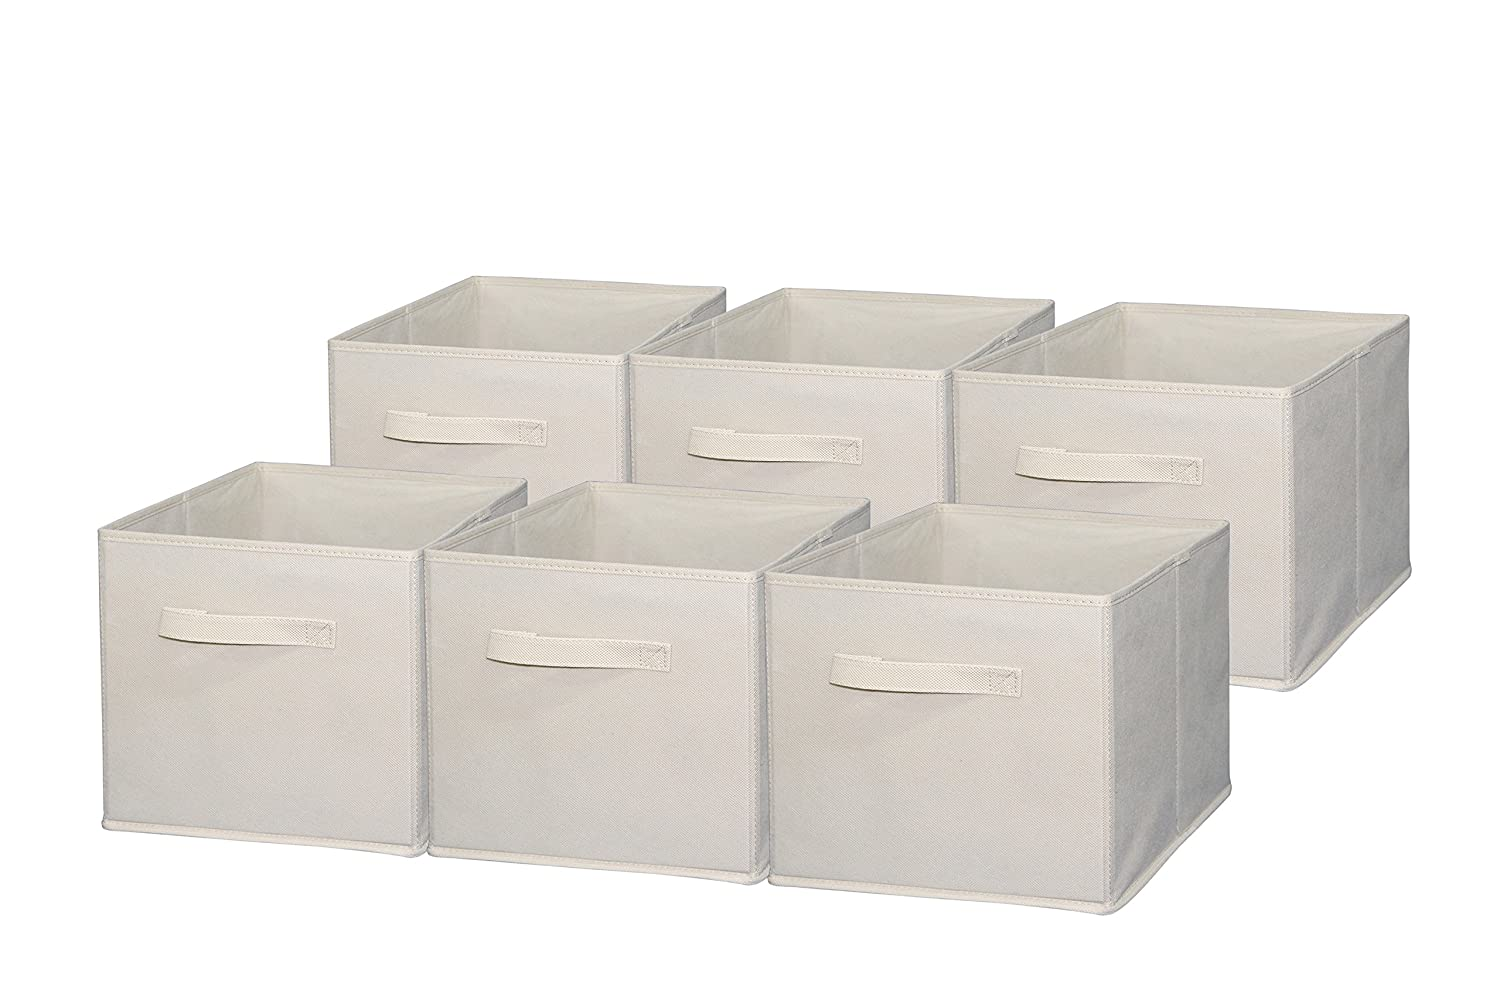 sodynee foldable cloth storage cube basket bins organizer containers drawers 6 ebay. Black Bedroom Furniture Sets. Home Design Ideas